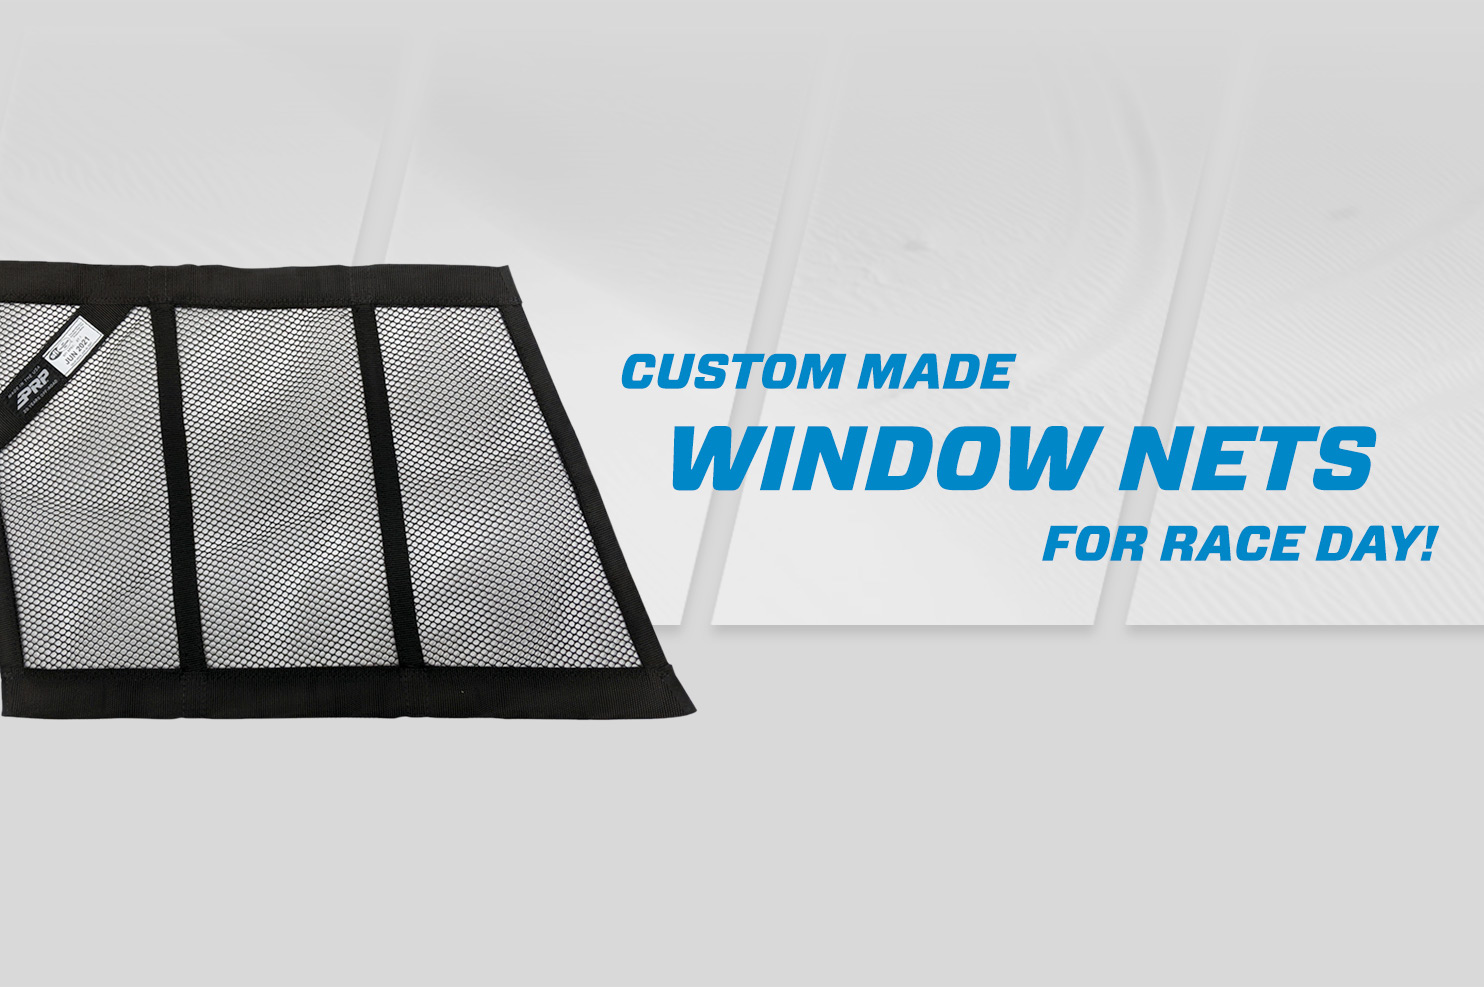 Window nets on prp speed grey background